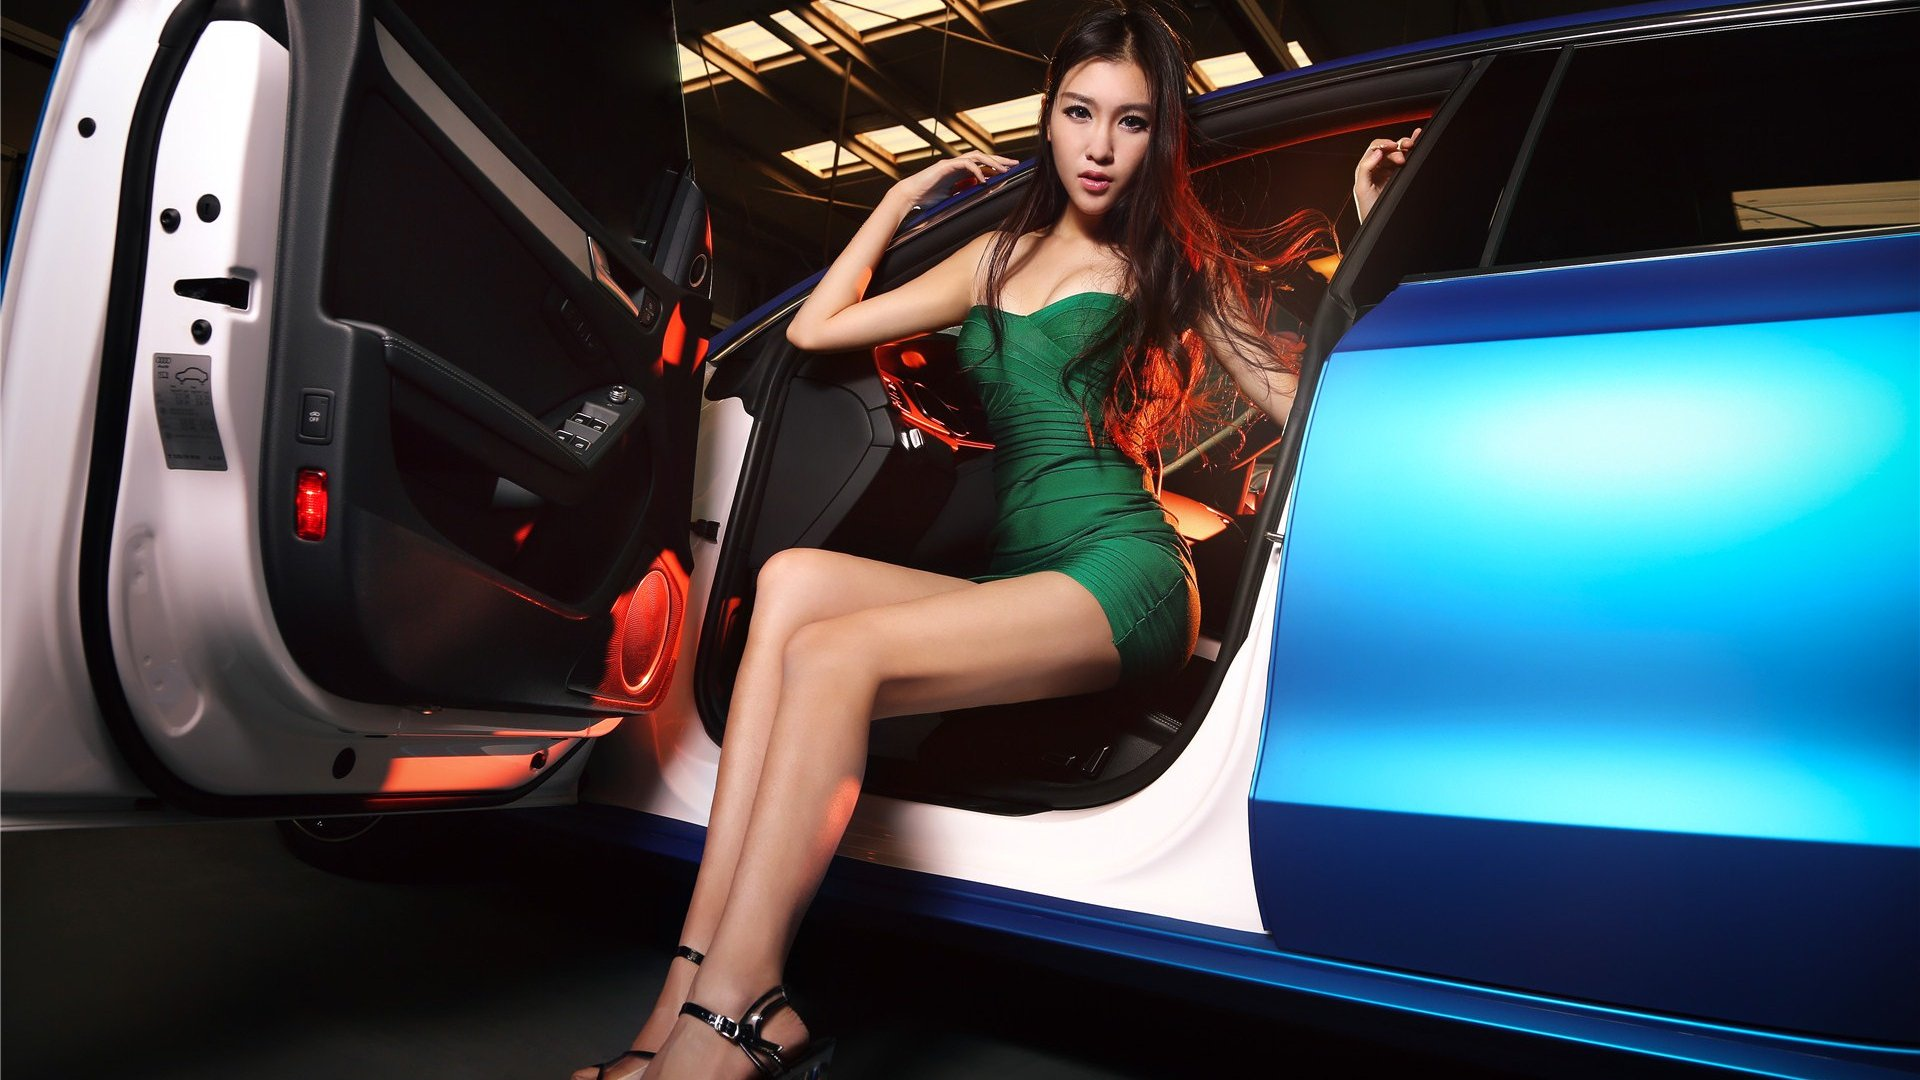 Beautiful Korean Girl Wallpaper Audi Model Sexy Car Asian Girl